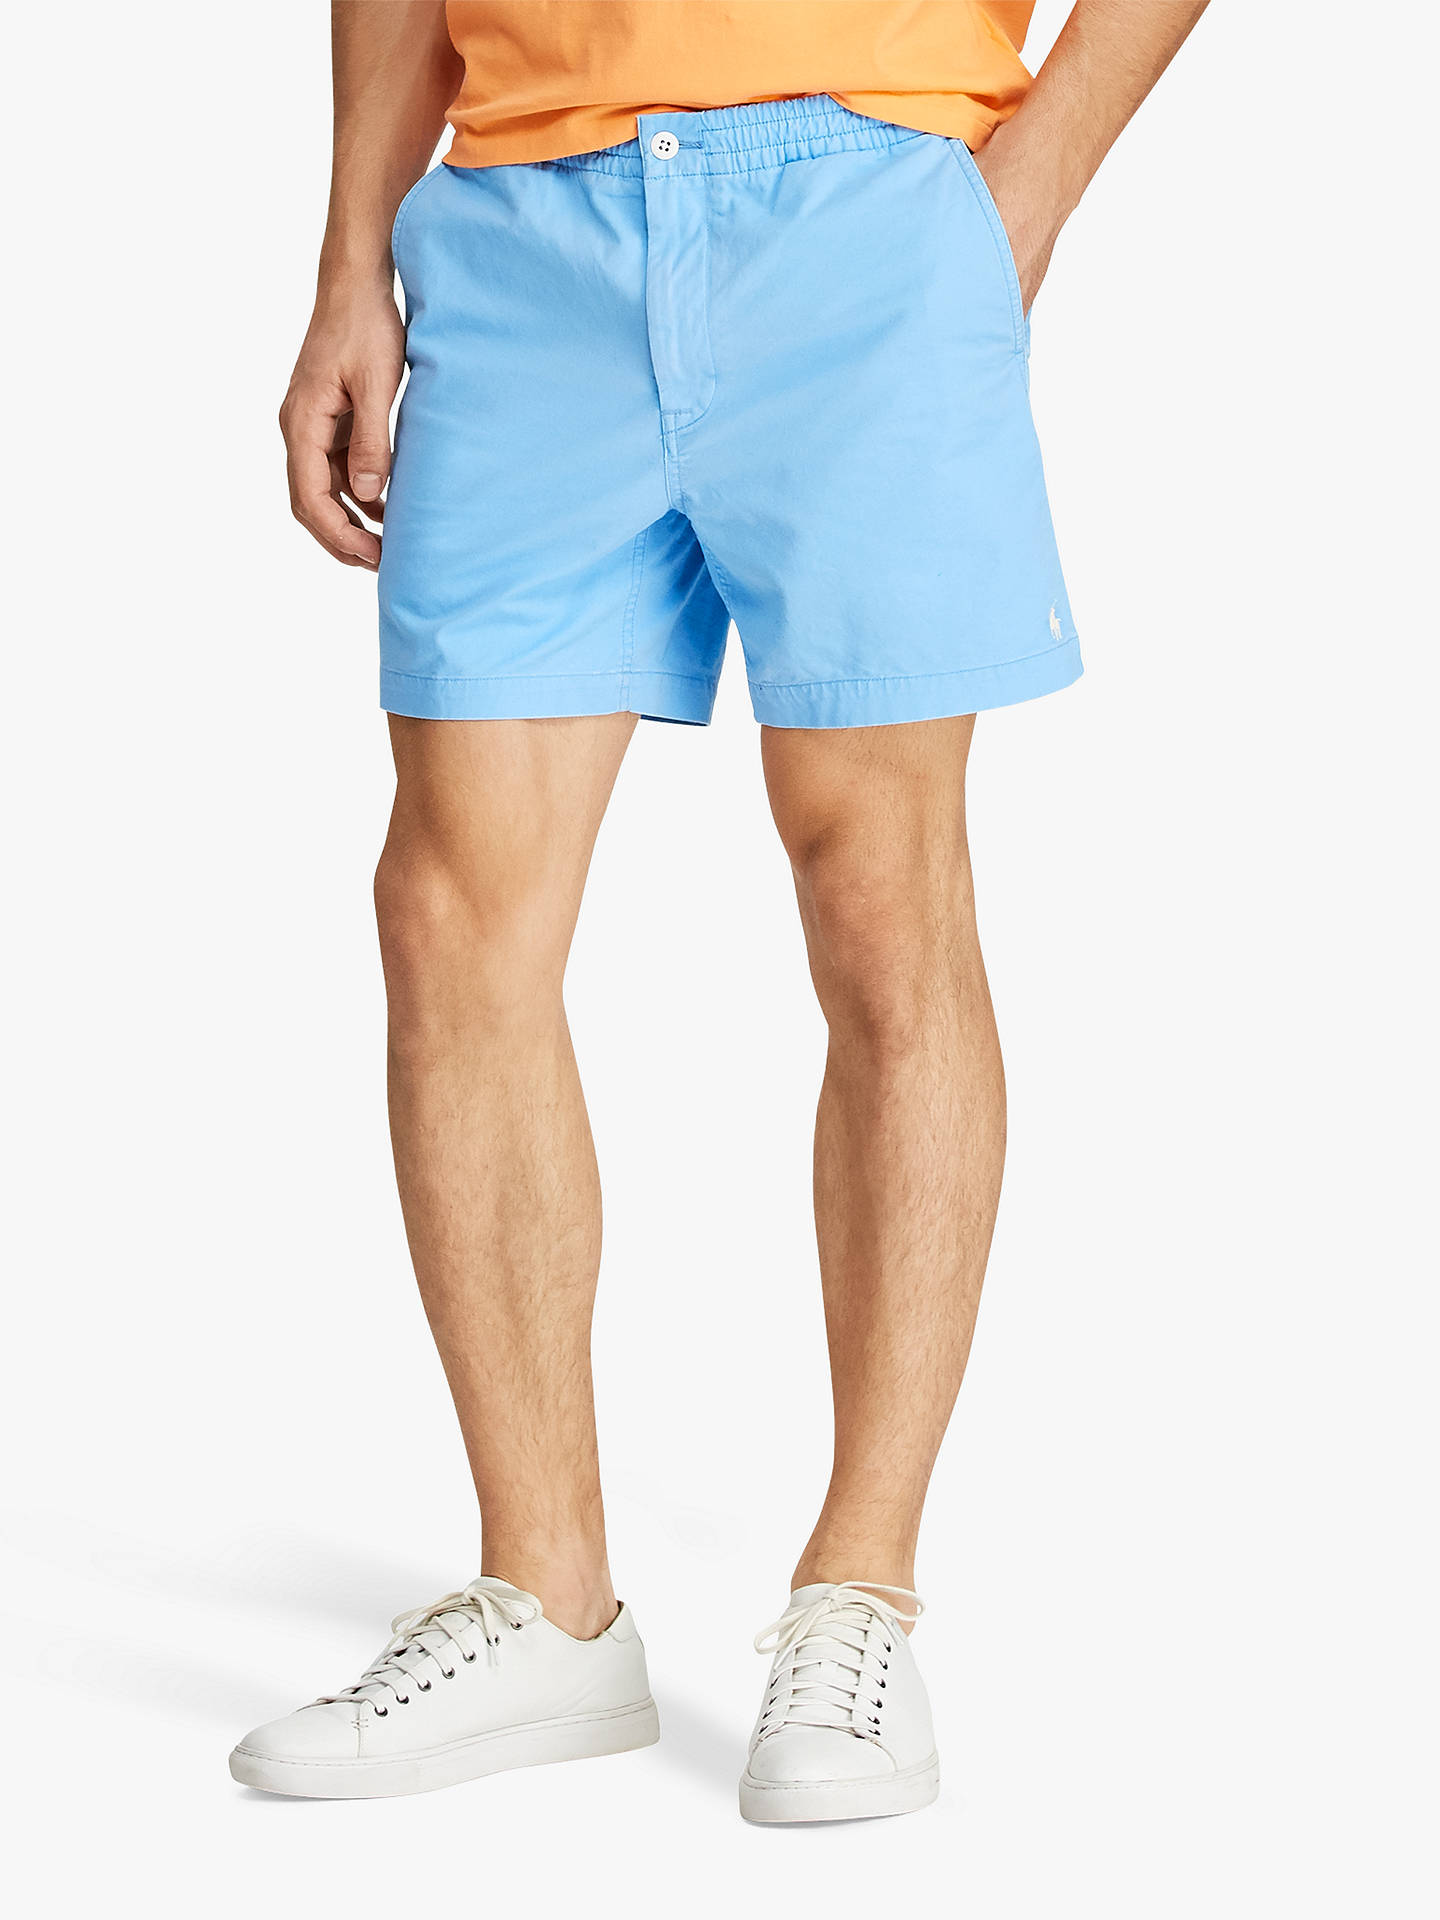 f95304209 Polo Ralph Lauren Prepster Flat Shorts at John Lewis   Partners